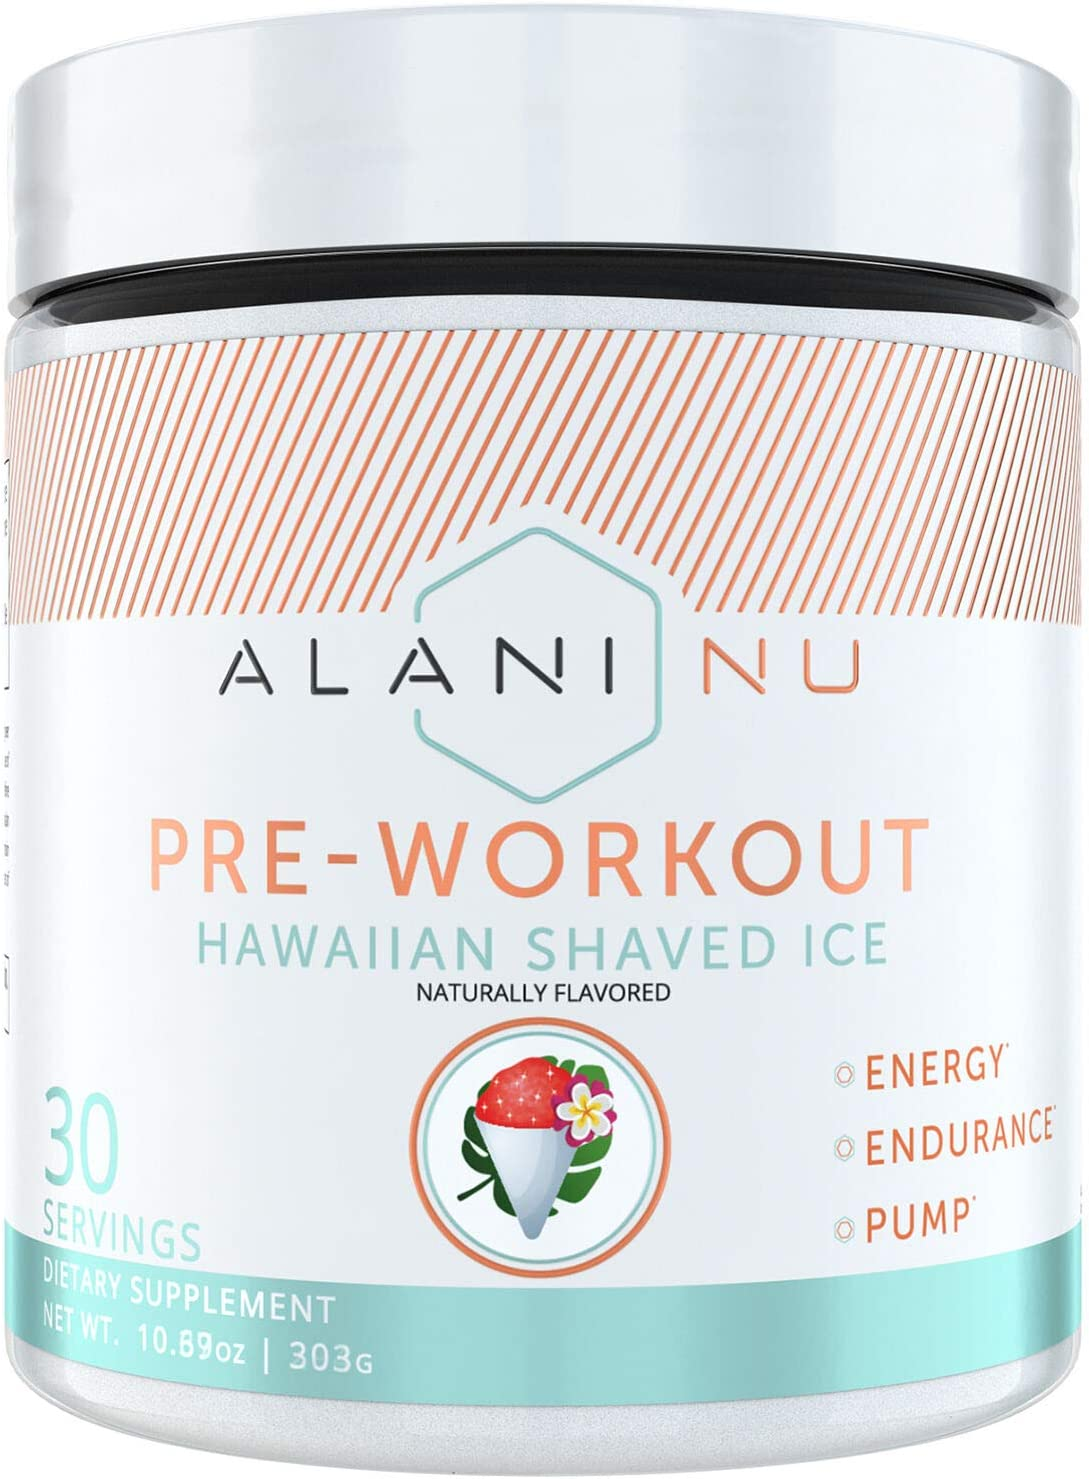 Alani Nu Pre-Workout – Hawaiian Shaved Ice